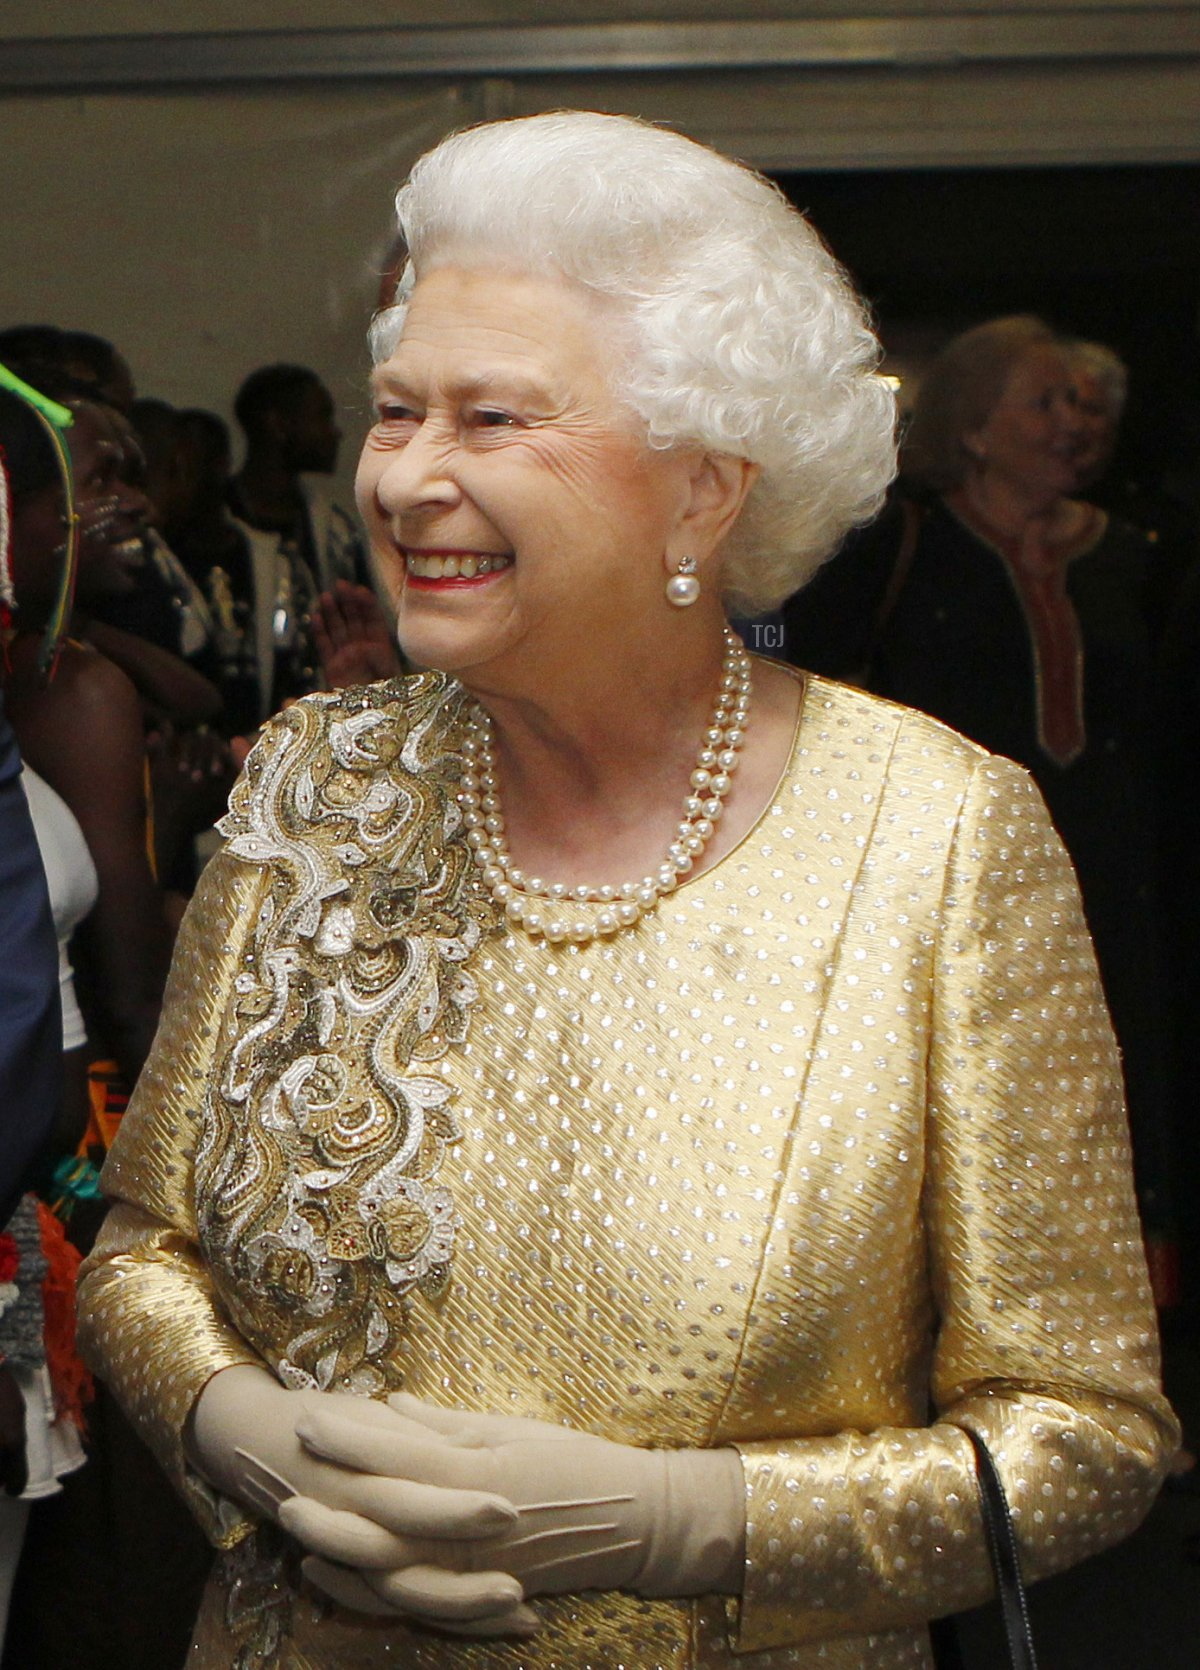 Queen Elizabeth II greets performers backstage during the Diamond Jubilee Concert outside Buckingham Palace in London, on June 4, 20112.The star-studded musical extravaganza comes on the third of four days of celebrations to celebrate Queen Elizabeth II's 60 years on the throne